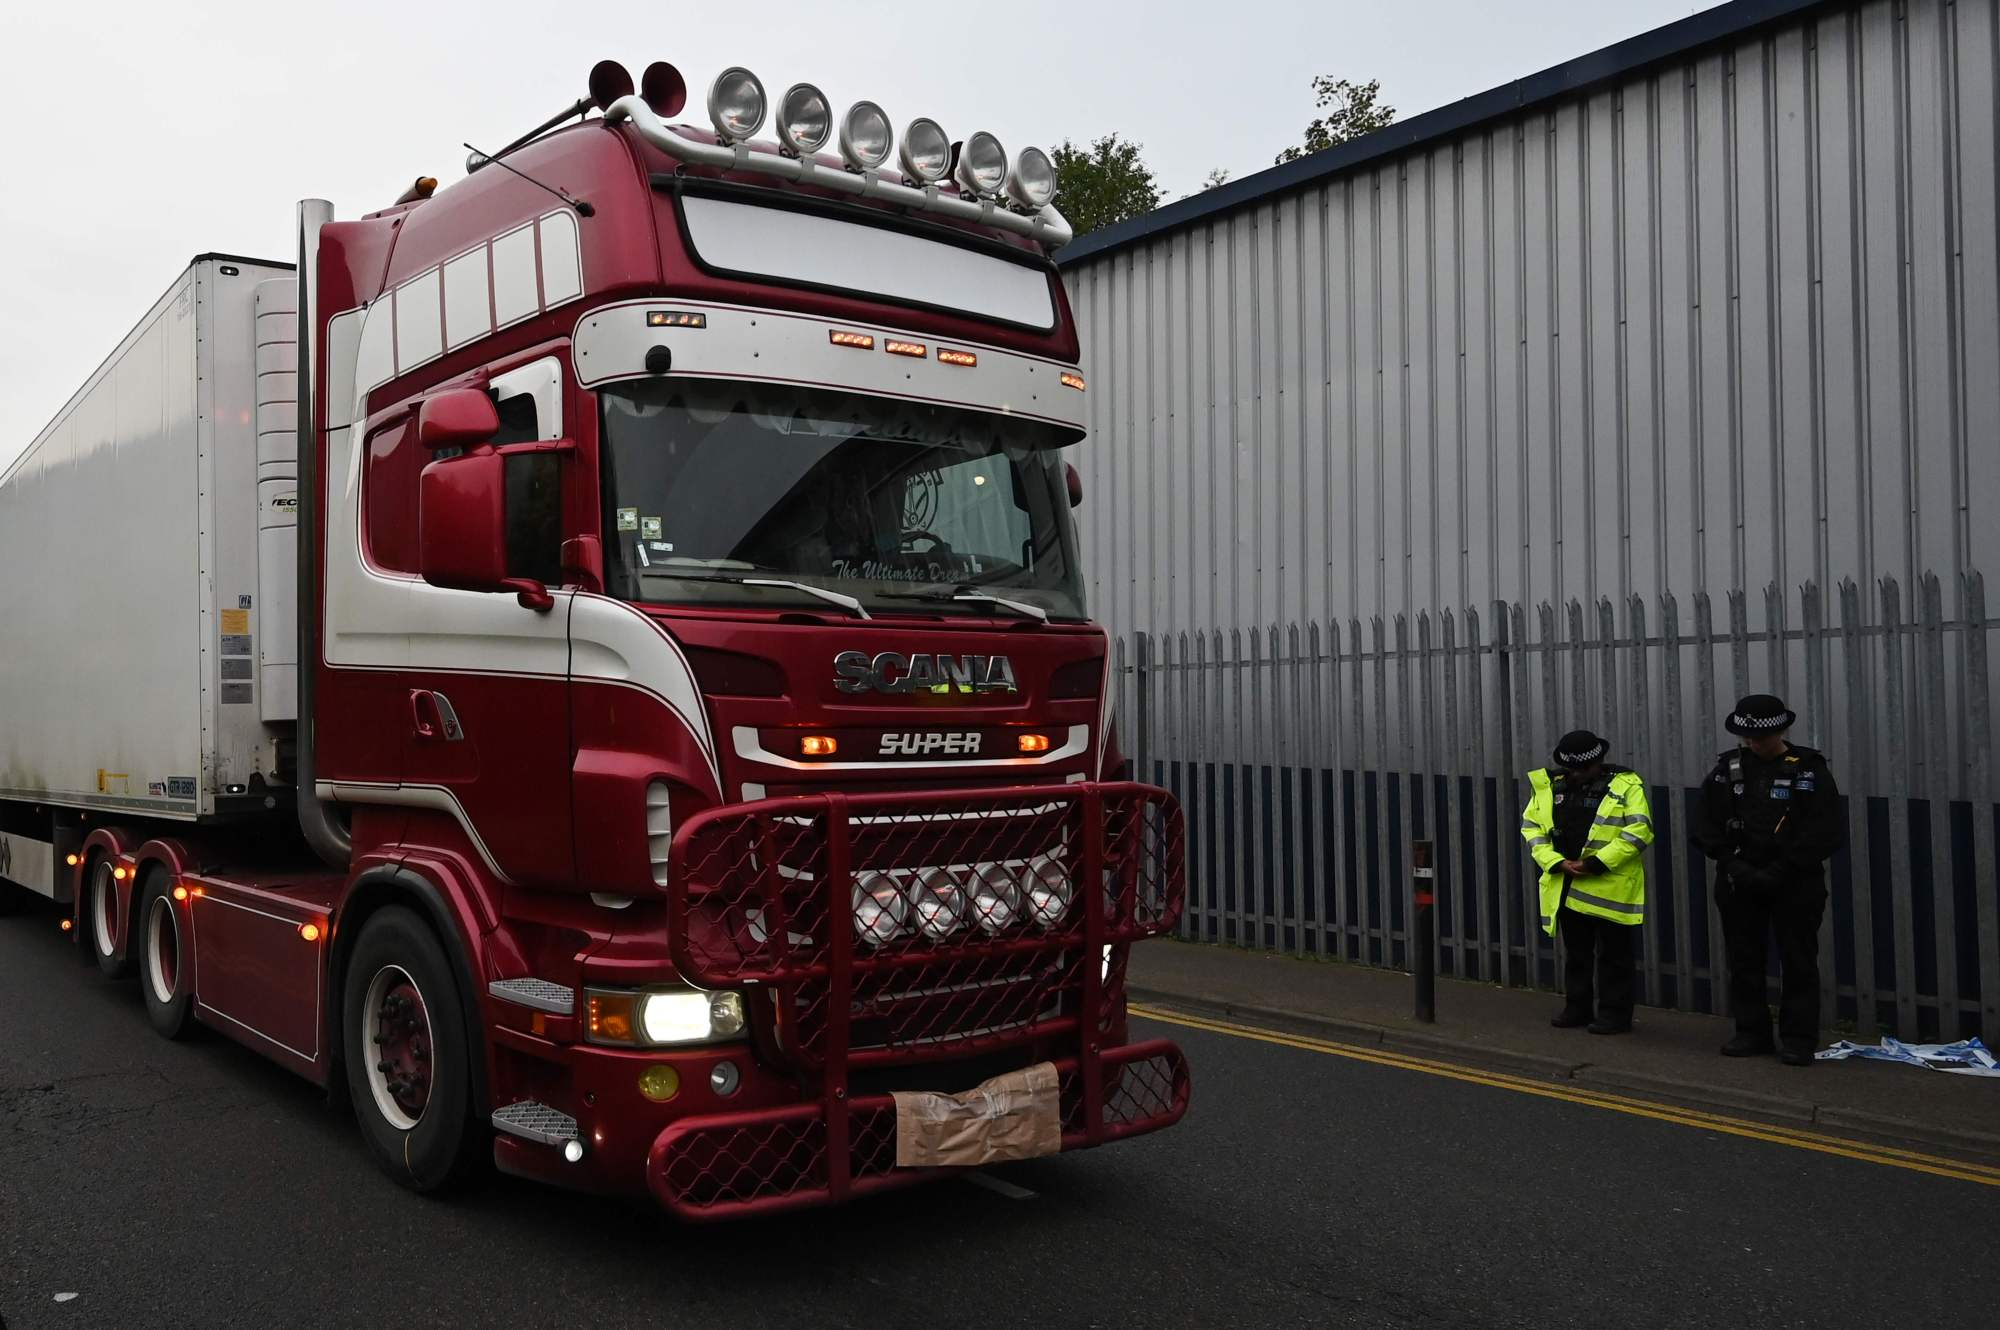 Police officers drive away a truck in which 39 dead bodies were discovered sparking a murder investigation at Waterglade Industrial Park in Grays, east of London, on Wednesday. | AFP-JIJI